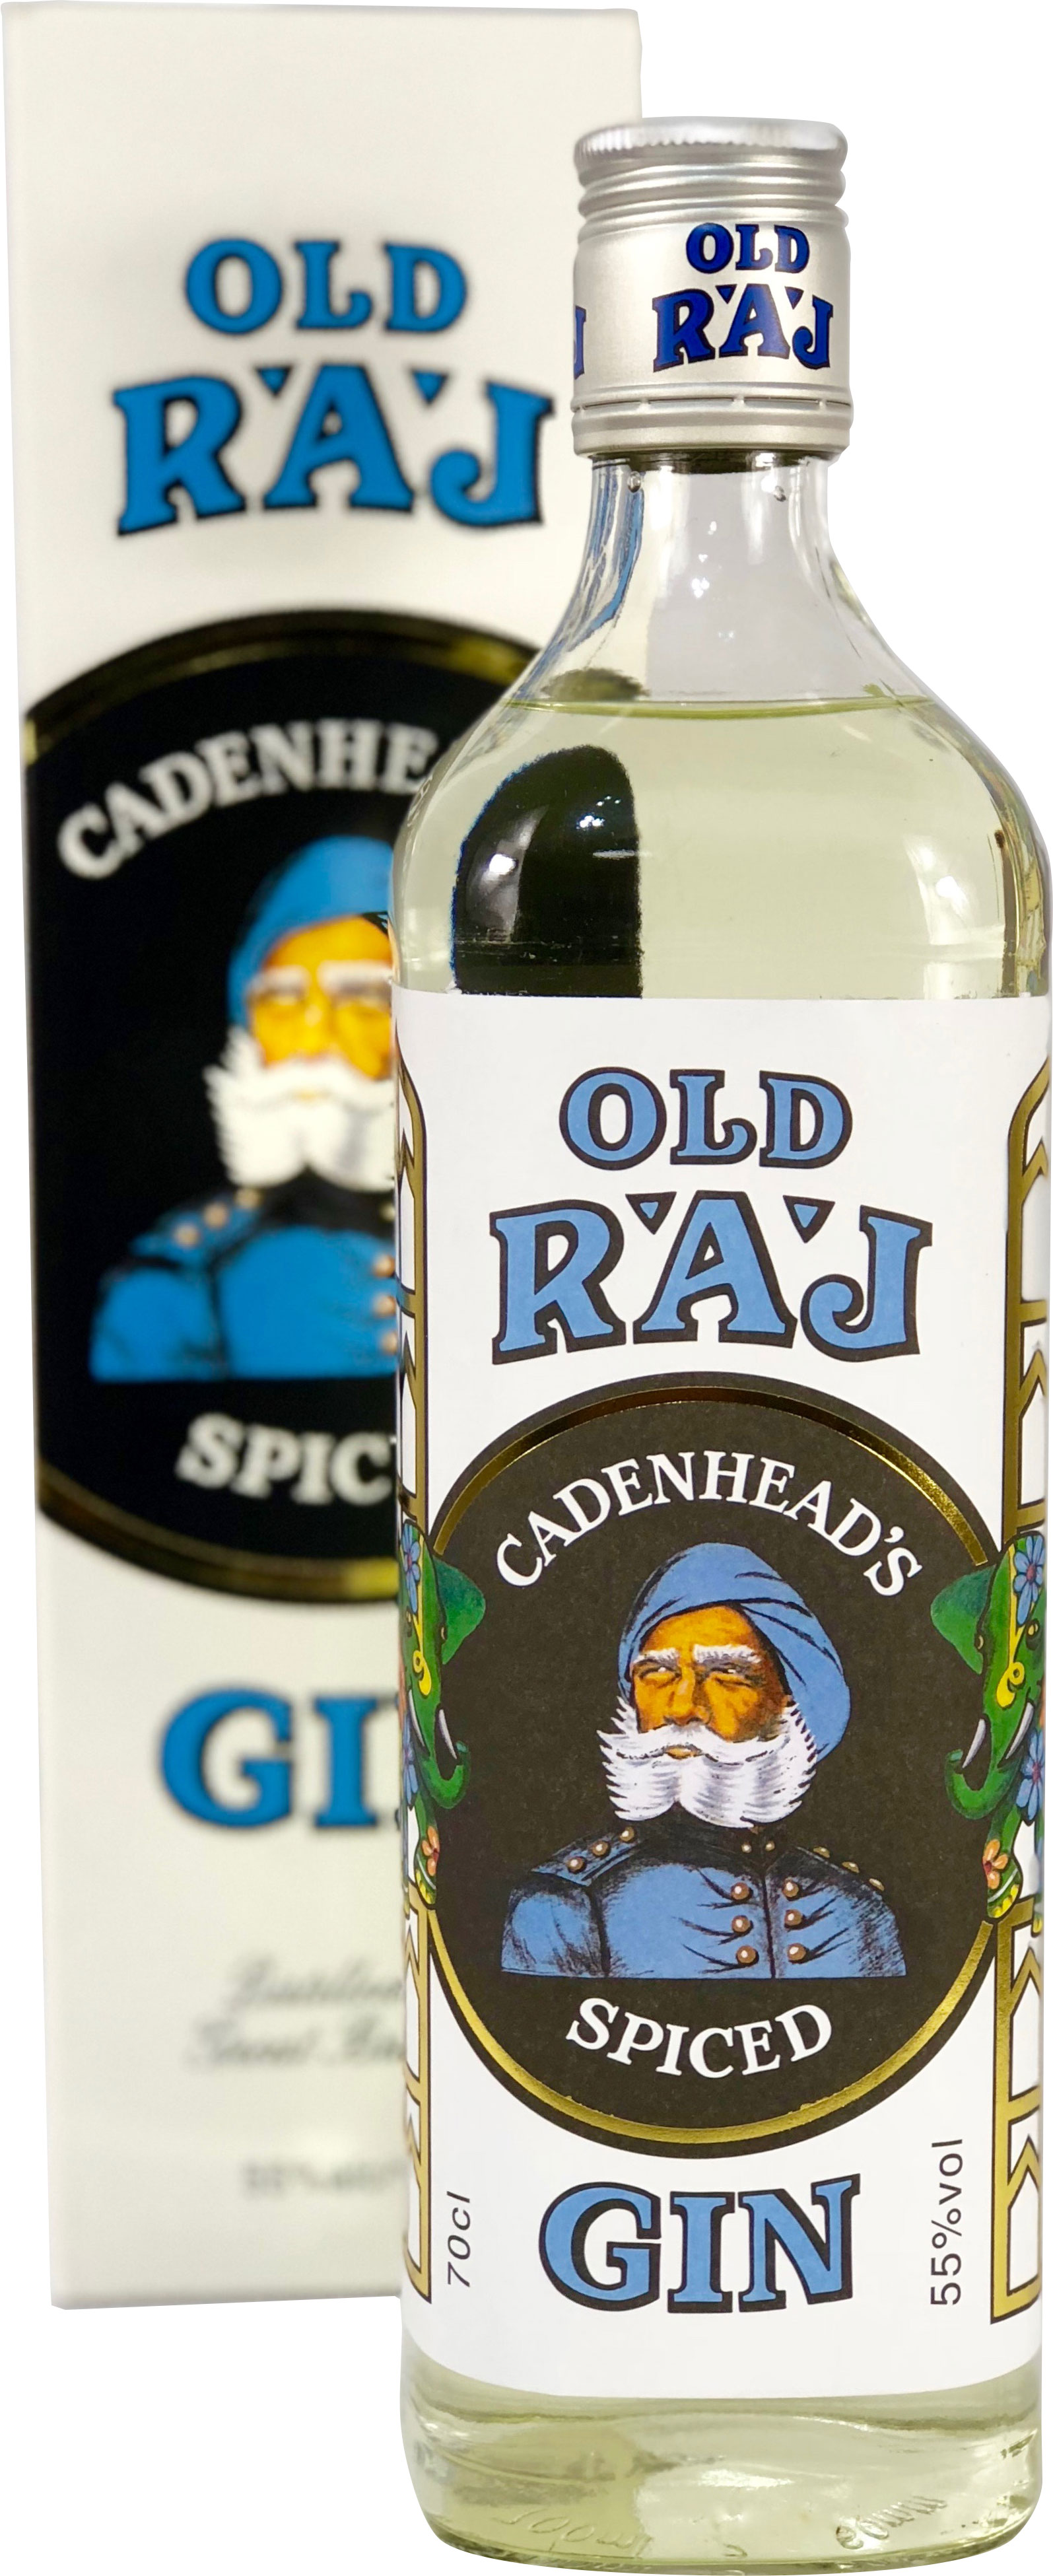 Cadenheads - Old Raj Spiced Gin (Blue Label) 70cl Bottle